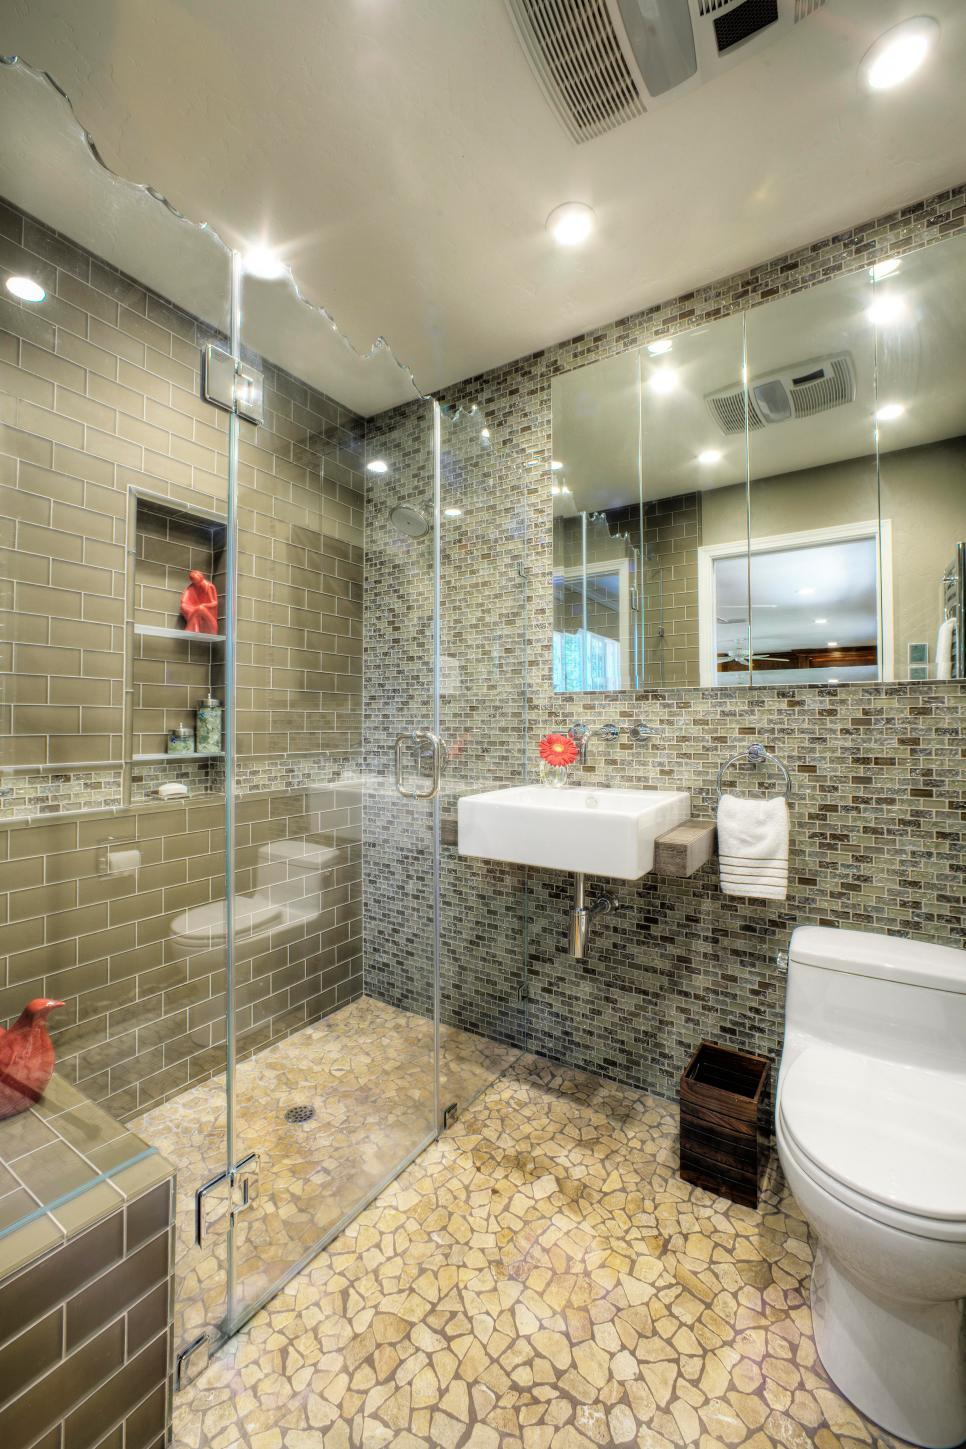 Award winning bathroom designs 2016 - Nkba Bath Trend No Threshold Showers 5 Photos